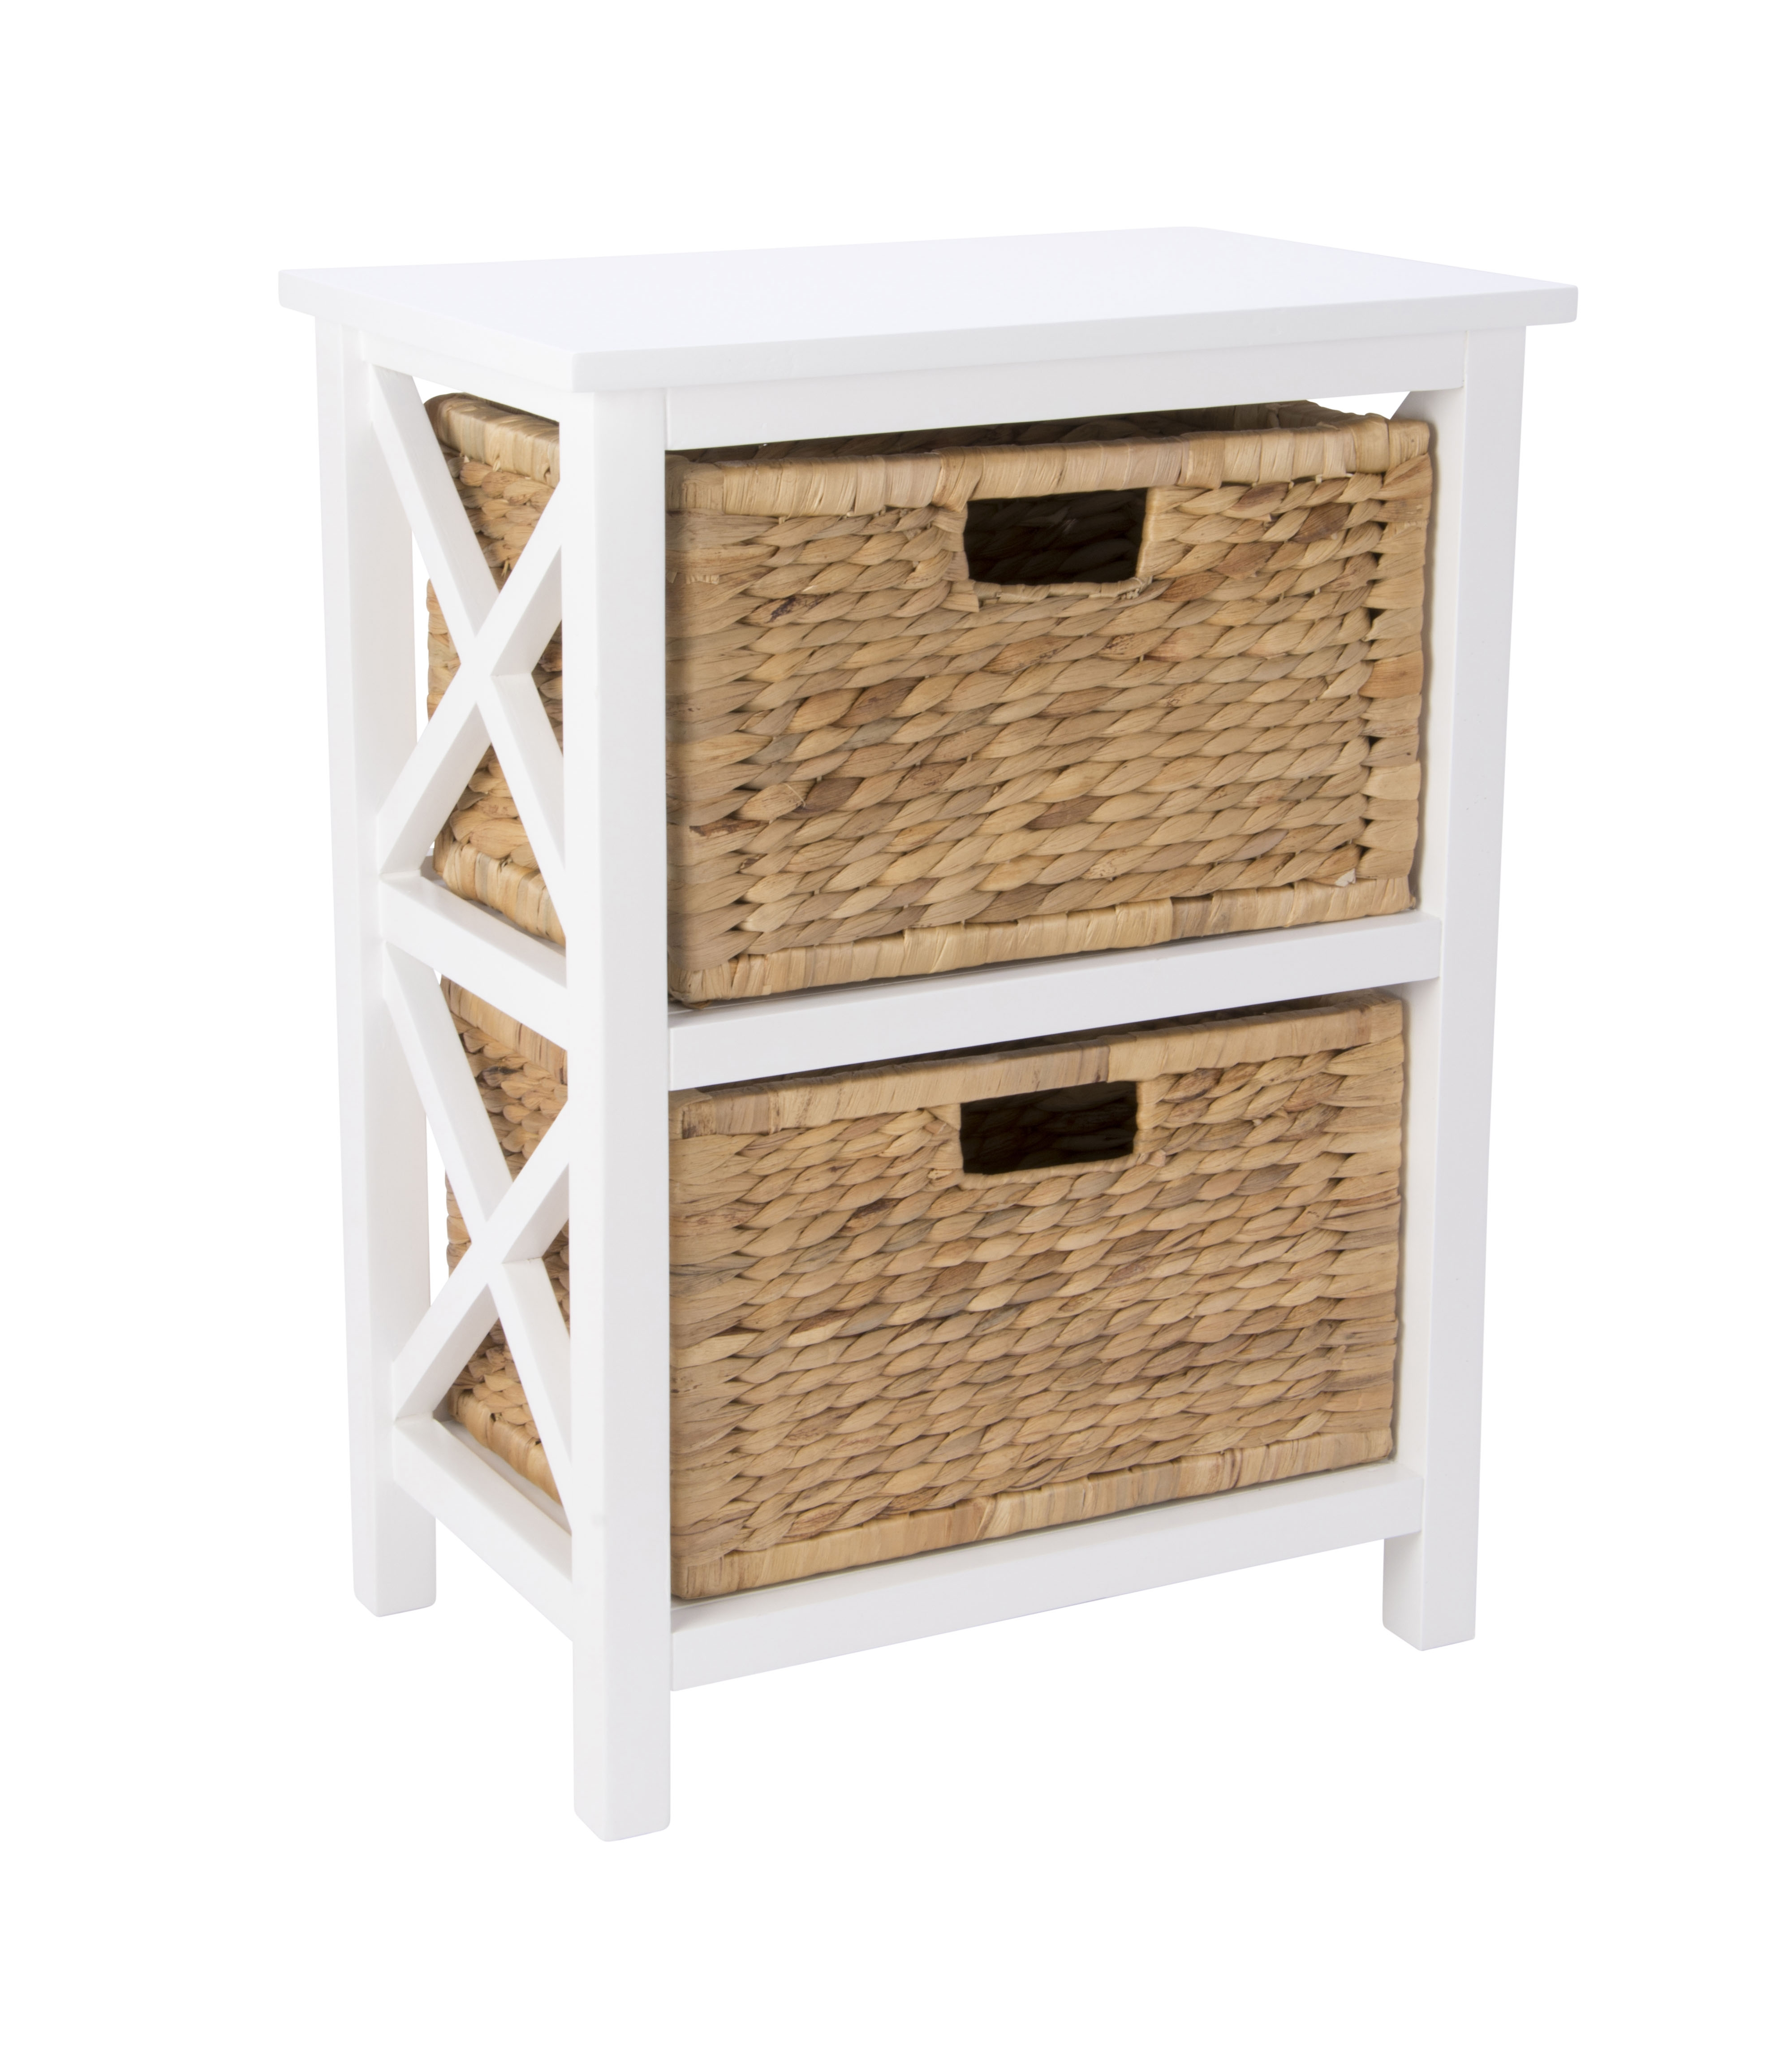 stella shelf 2 tier with hyacinth baskets from storage box. Black Bedroom Furniture Sets. Home Design Ideas